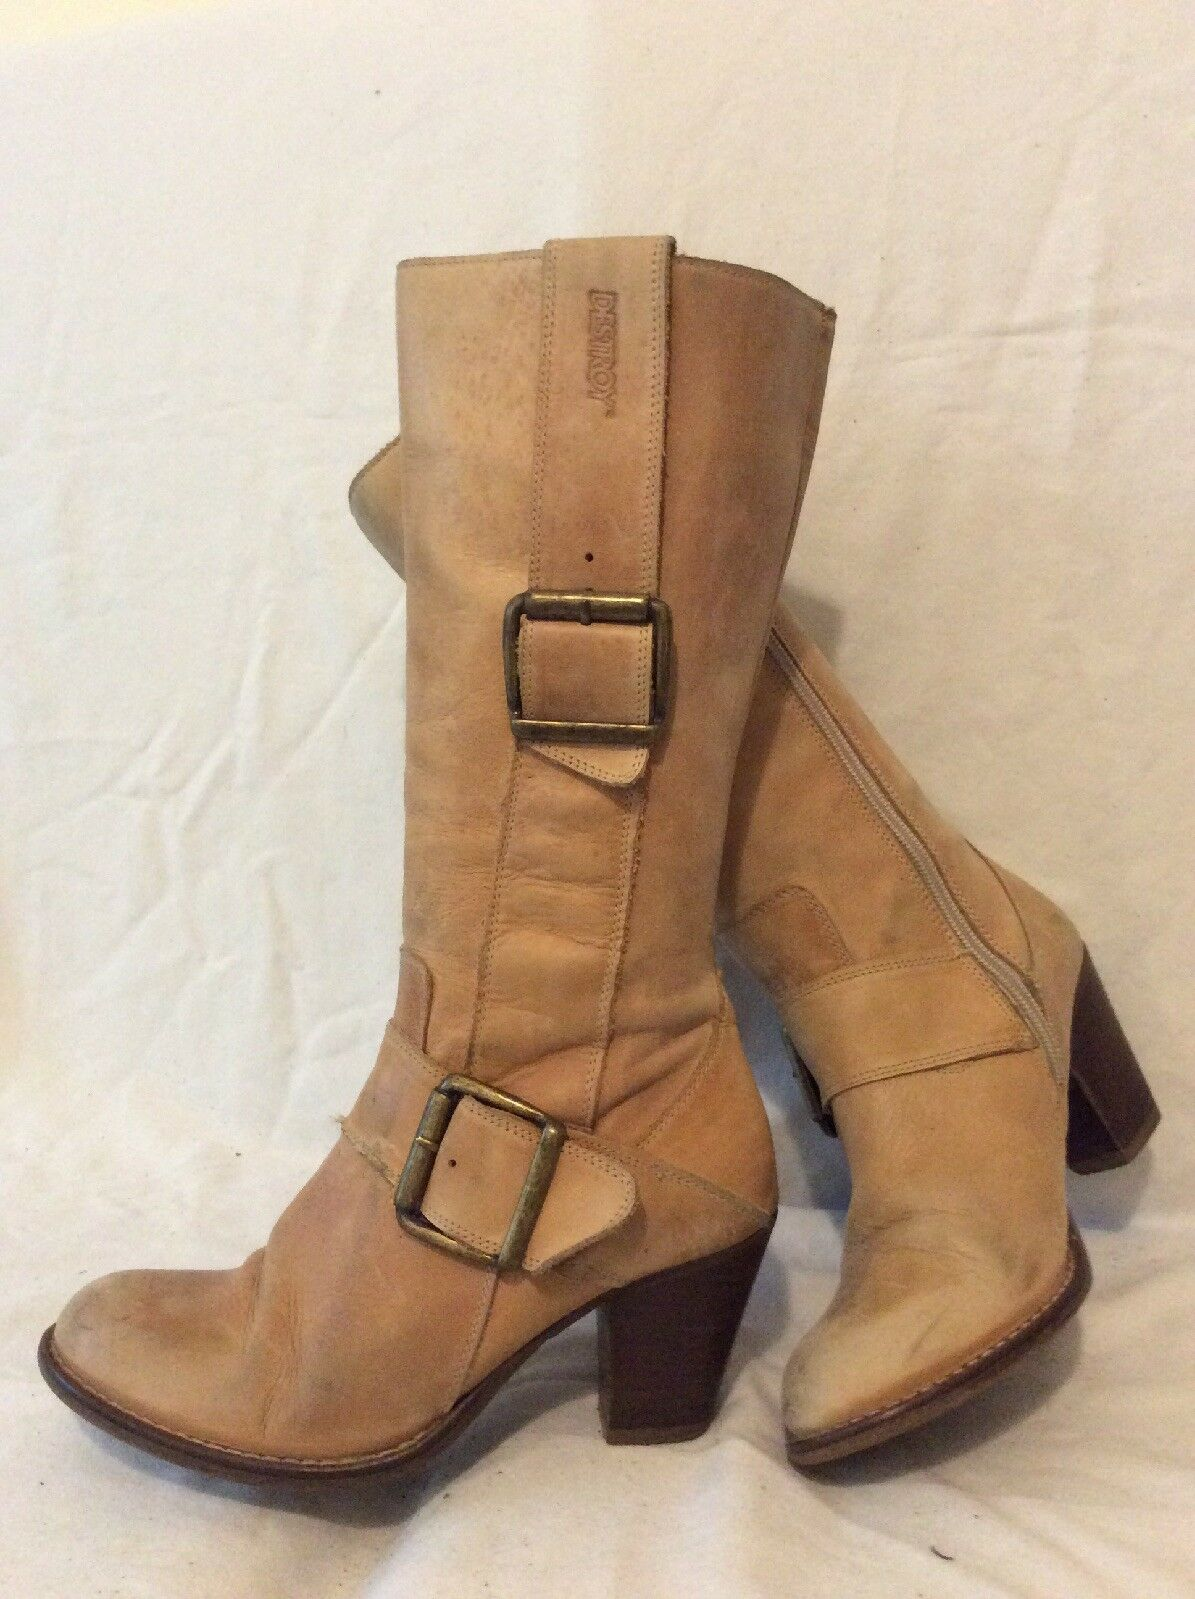 Destroy Beige Mid Calf Leather Boots Size 37